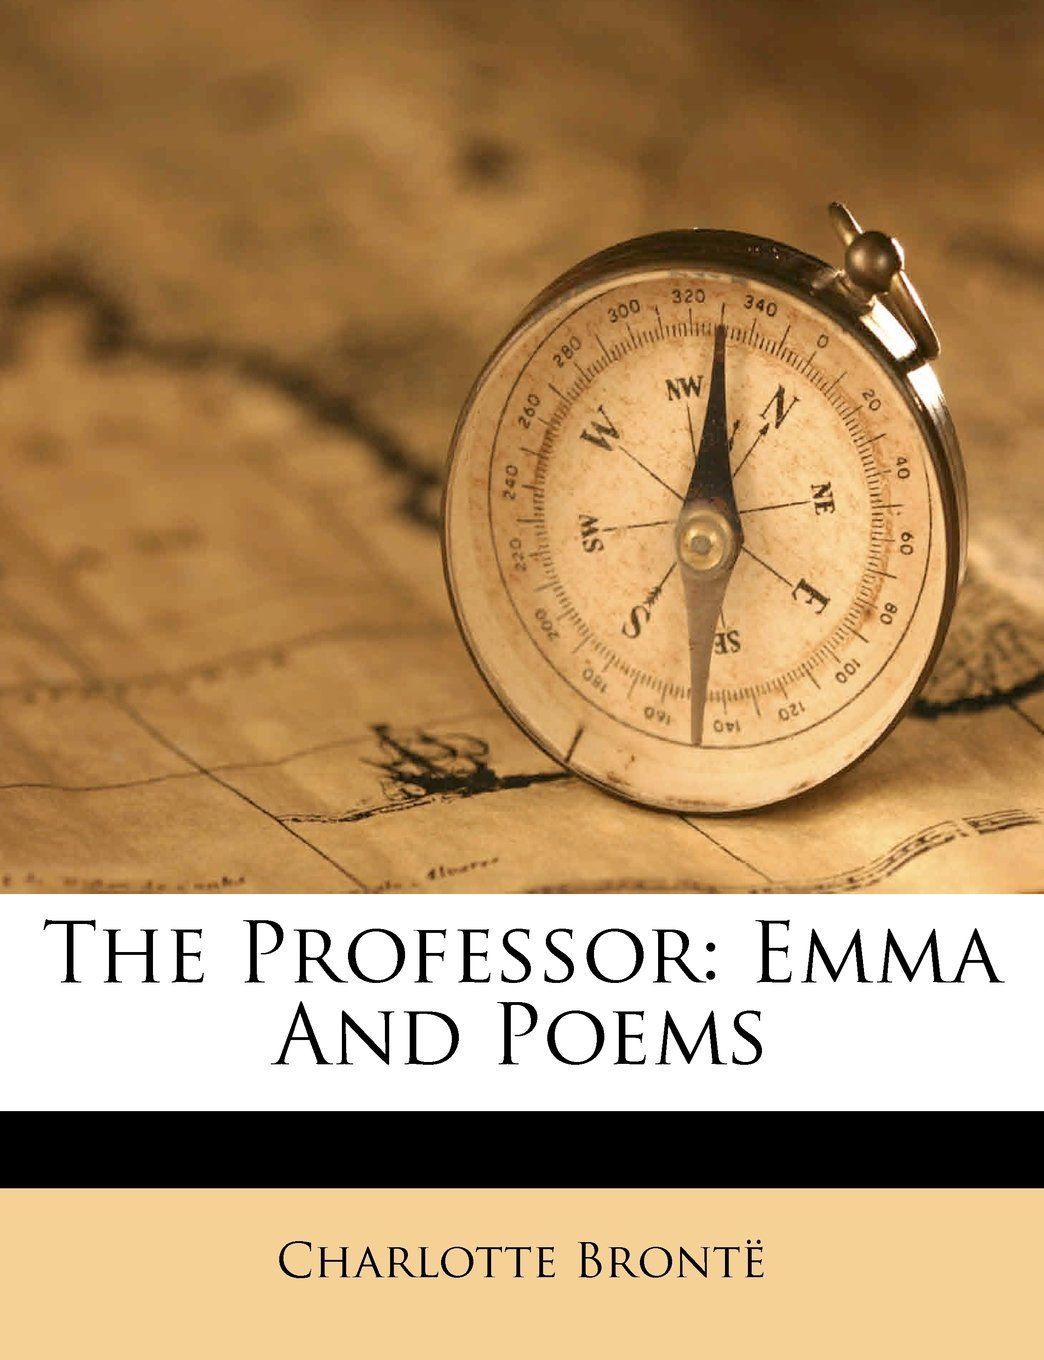 The Professor: Emma and Poems